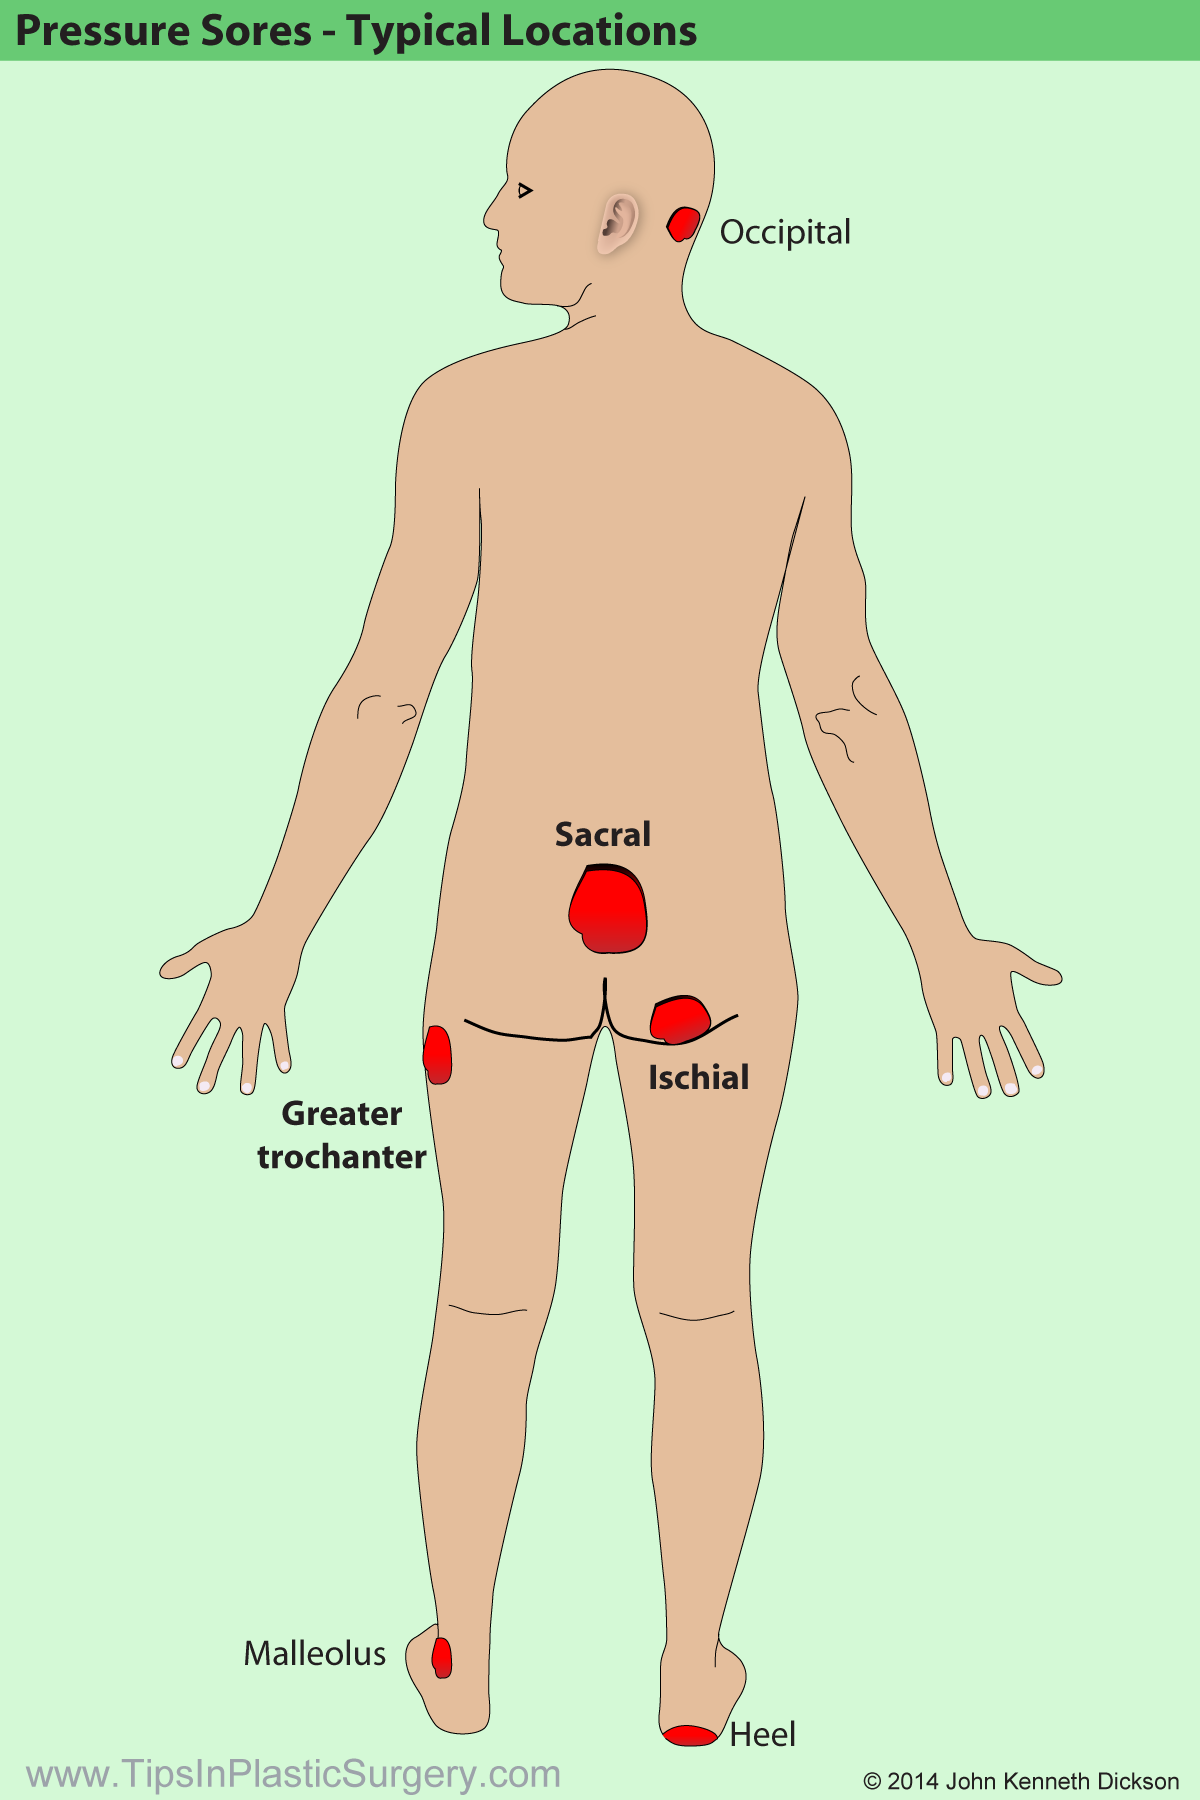 Typical locations for pressure sore These diagrams have been designed for plastic surgery